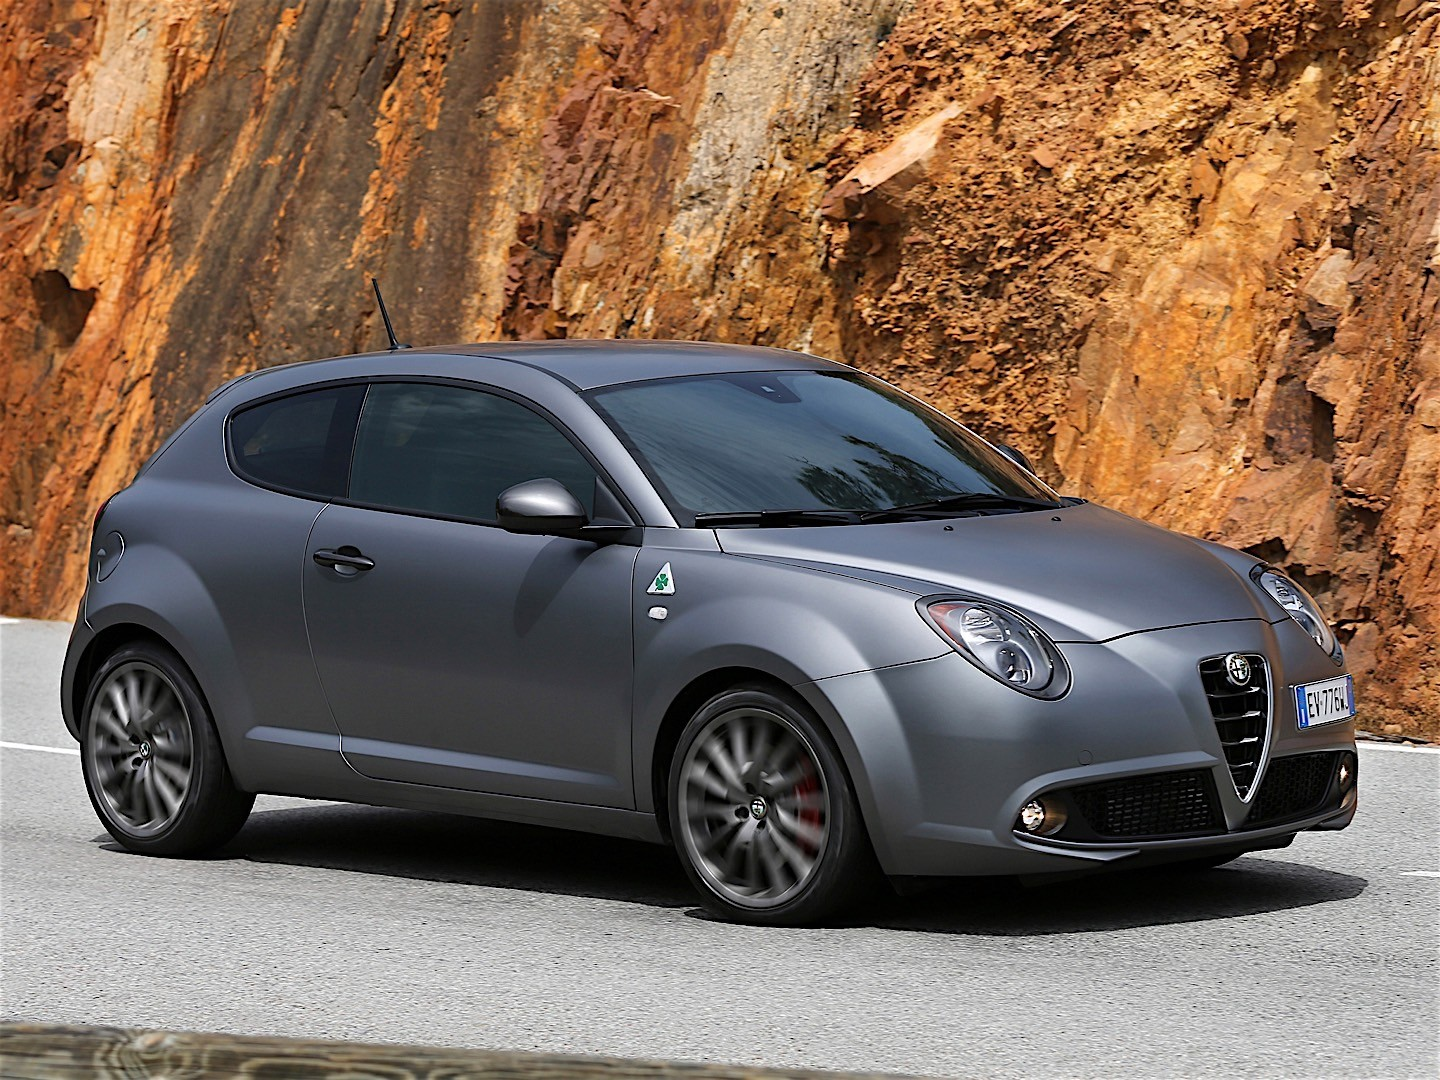 alfa romeo mito quadrifoglio verde specs 2013 2014 2015 2016 autoevolution. Black Bedroom Furniture Sets. Home Design Ideas